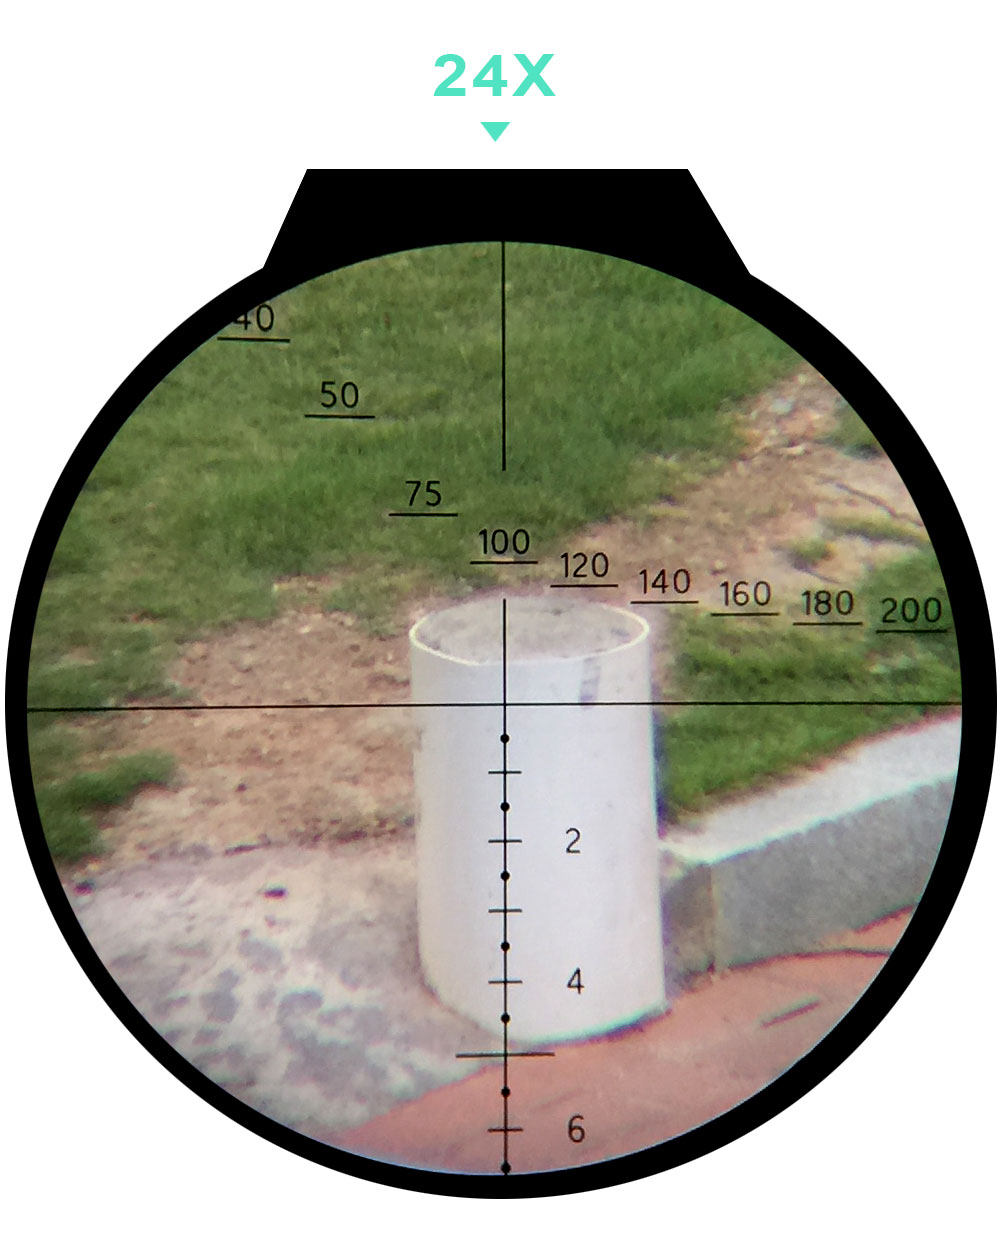 ohhunt FFP 6-24X50 SF First Focal Plane Scope Side Parallax Glass Etched Reticle Lock Reset Hunting Tactical Optical Riflescopes (6)